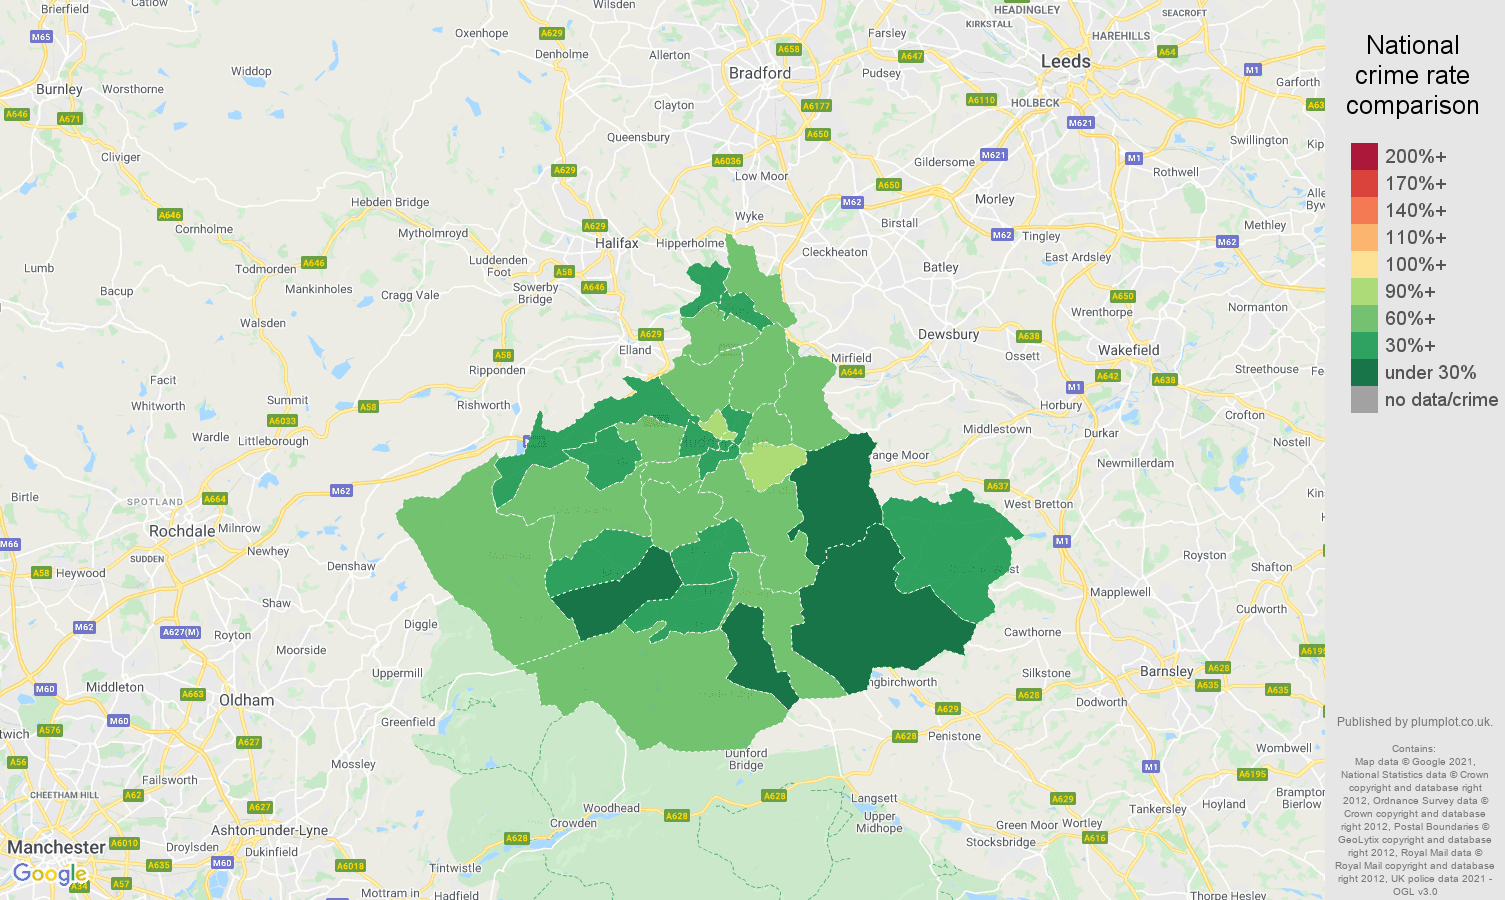 Huddersfield antisocial behaviour crime rate comparison map